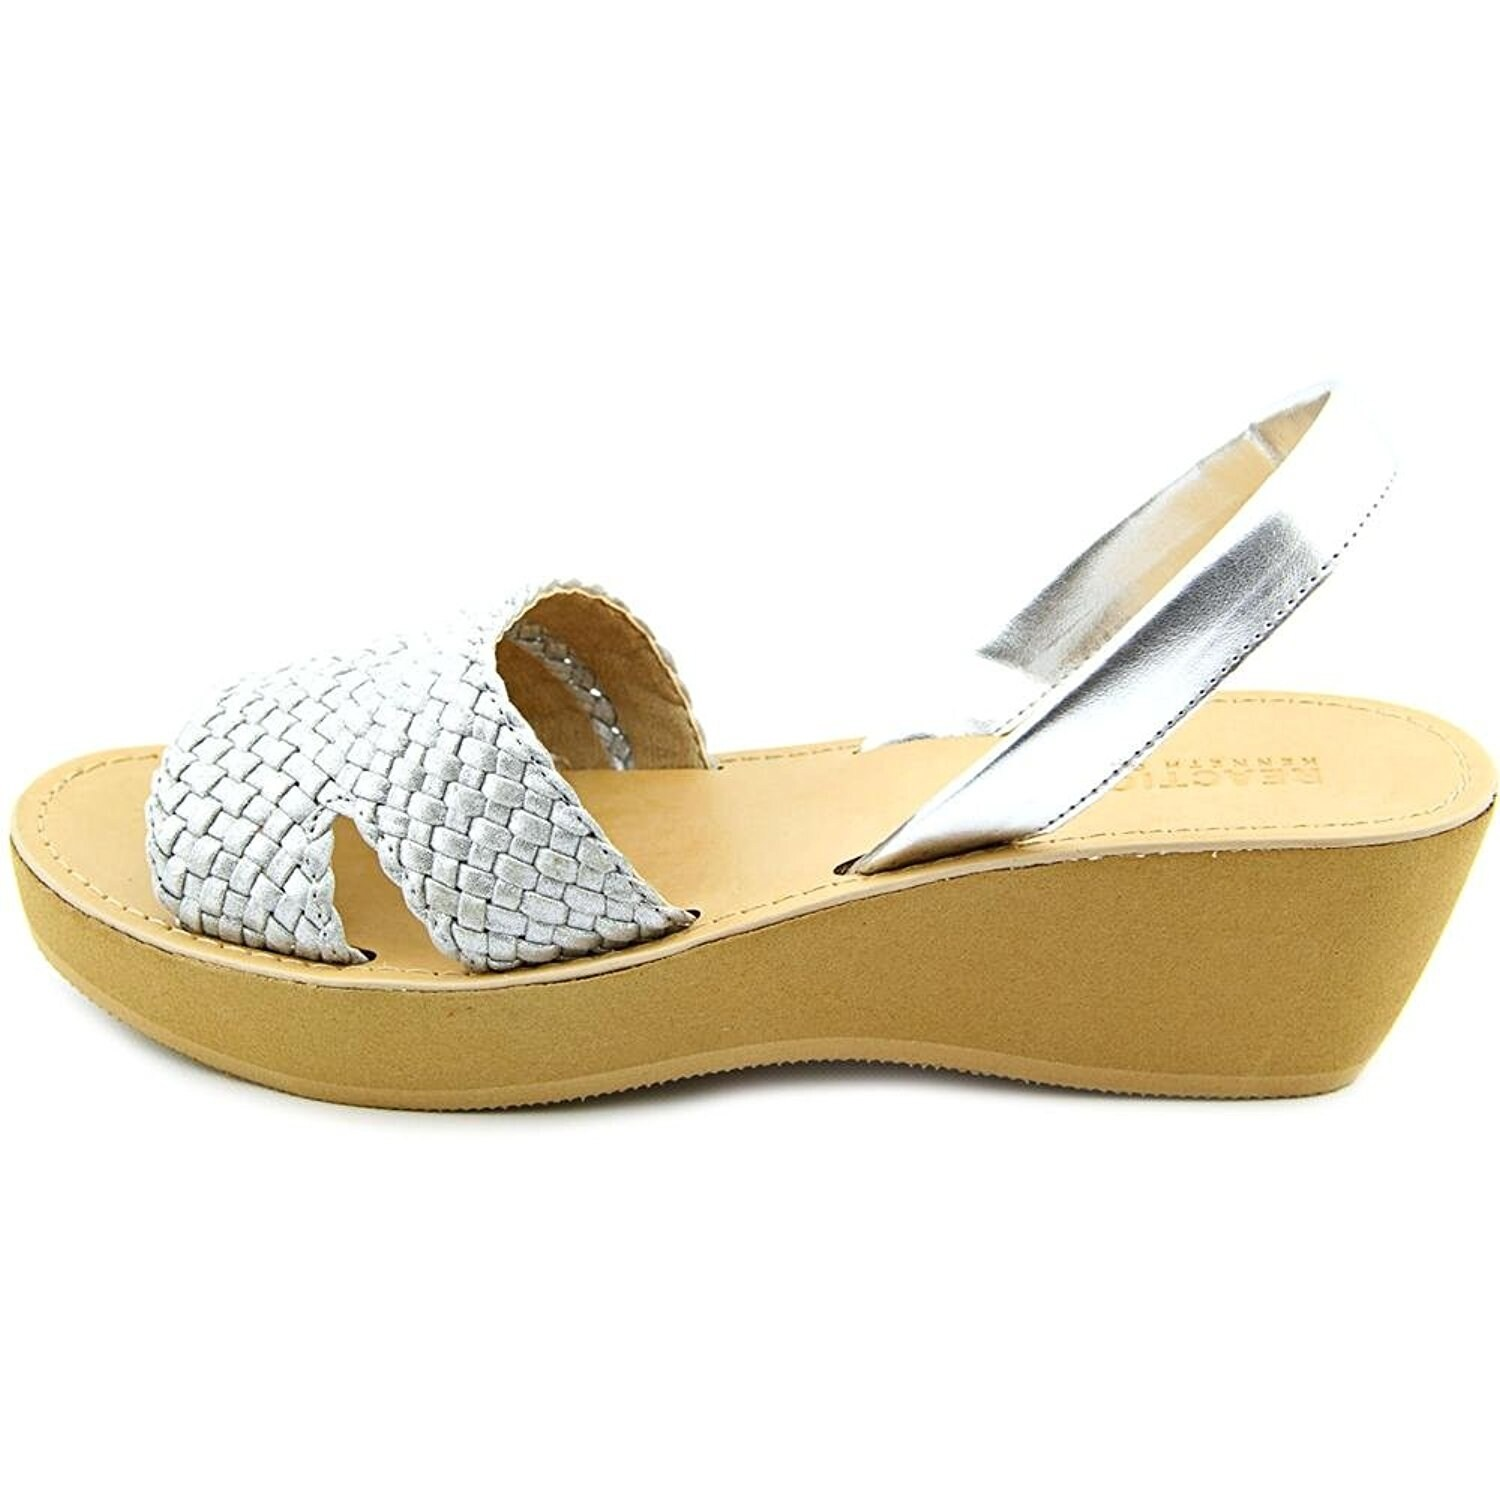 fe78a429db87 Shop Kenneth Cole Reaction Womens FINE GLASS 2 Open Toe Casual Platform  Sandals - Free Shipping On Orders Over  45 - Overstock.com - 14526785